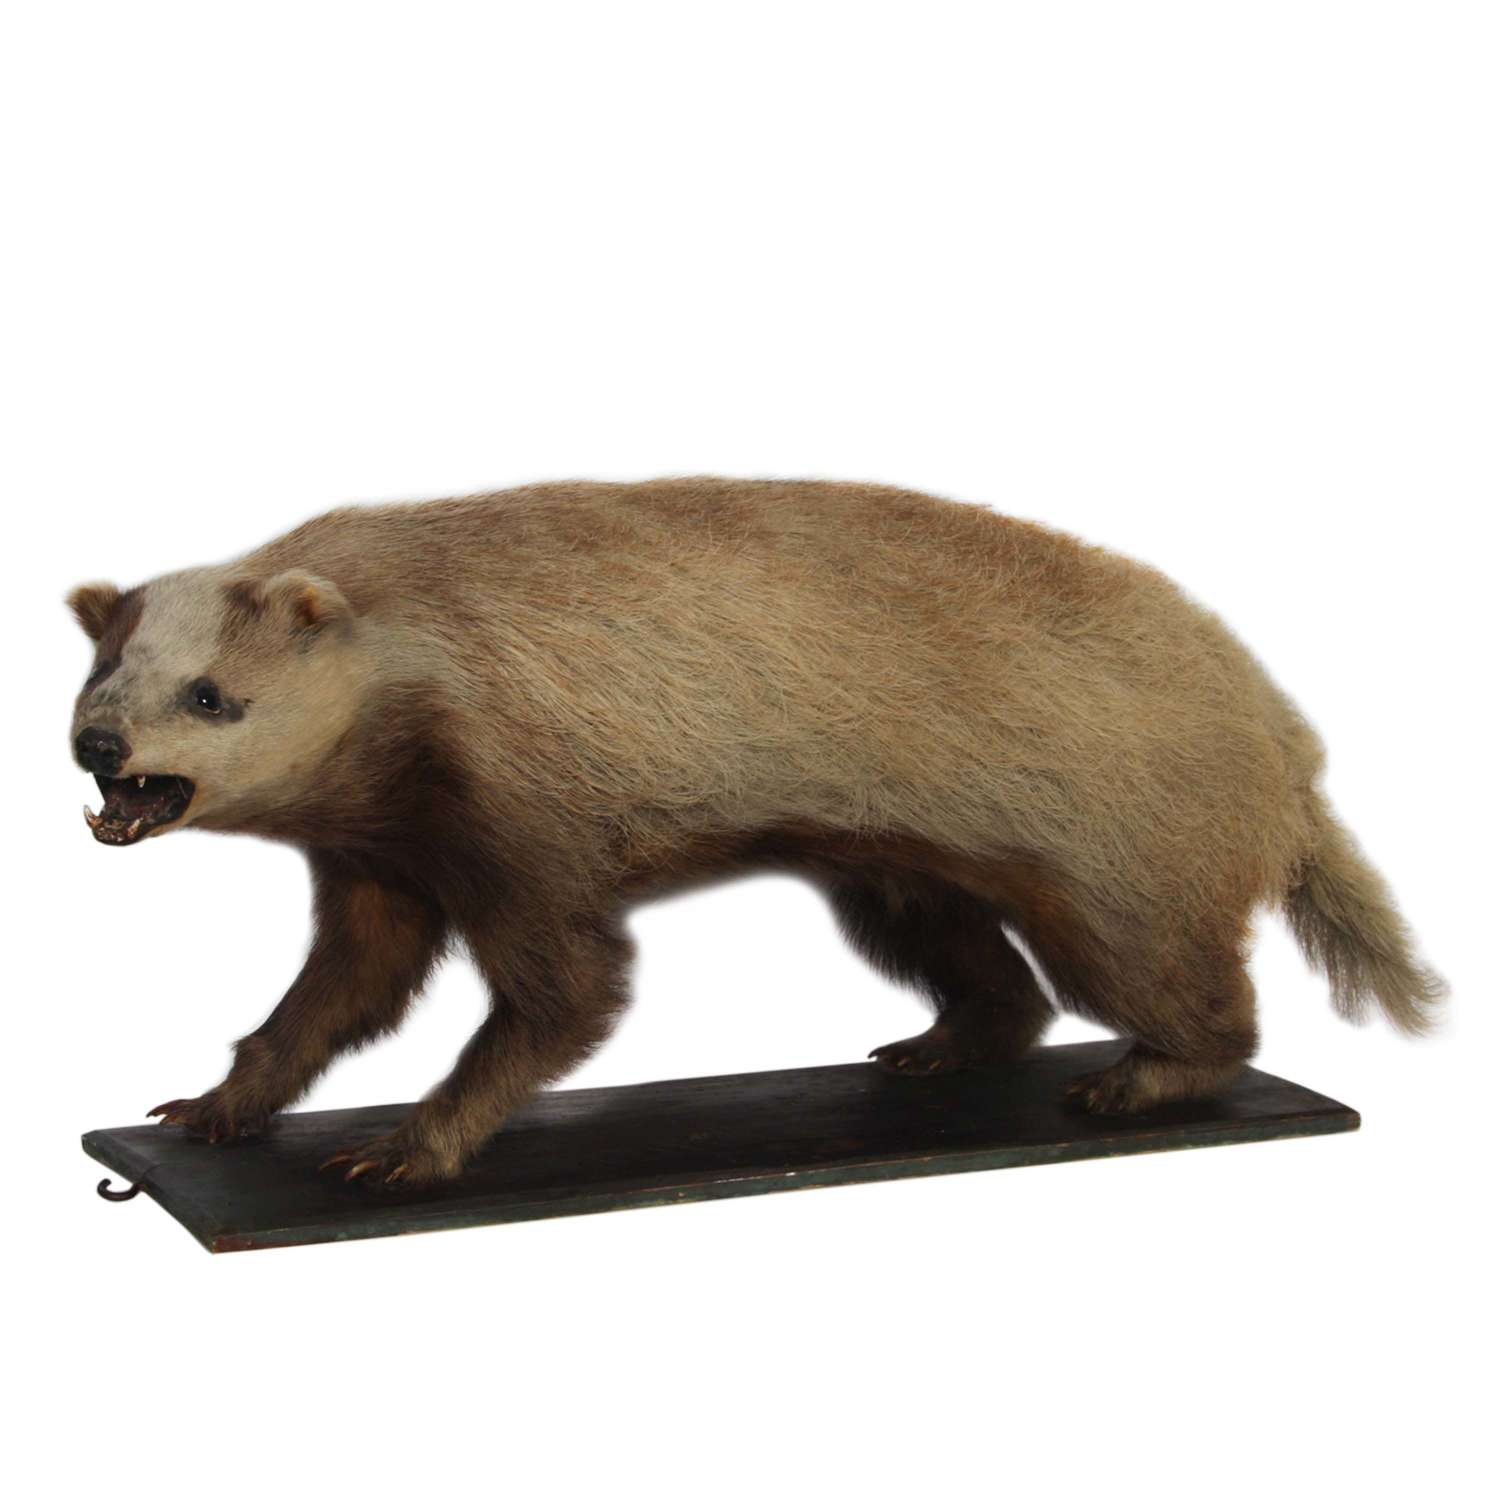 Early 20th Century Taxidermy Badger Mounted on Wood